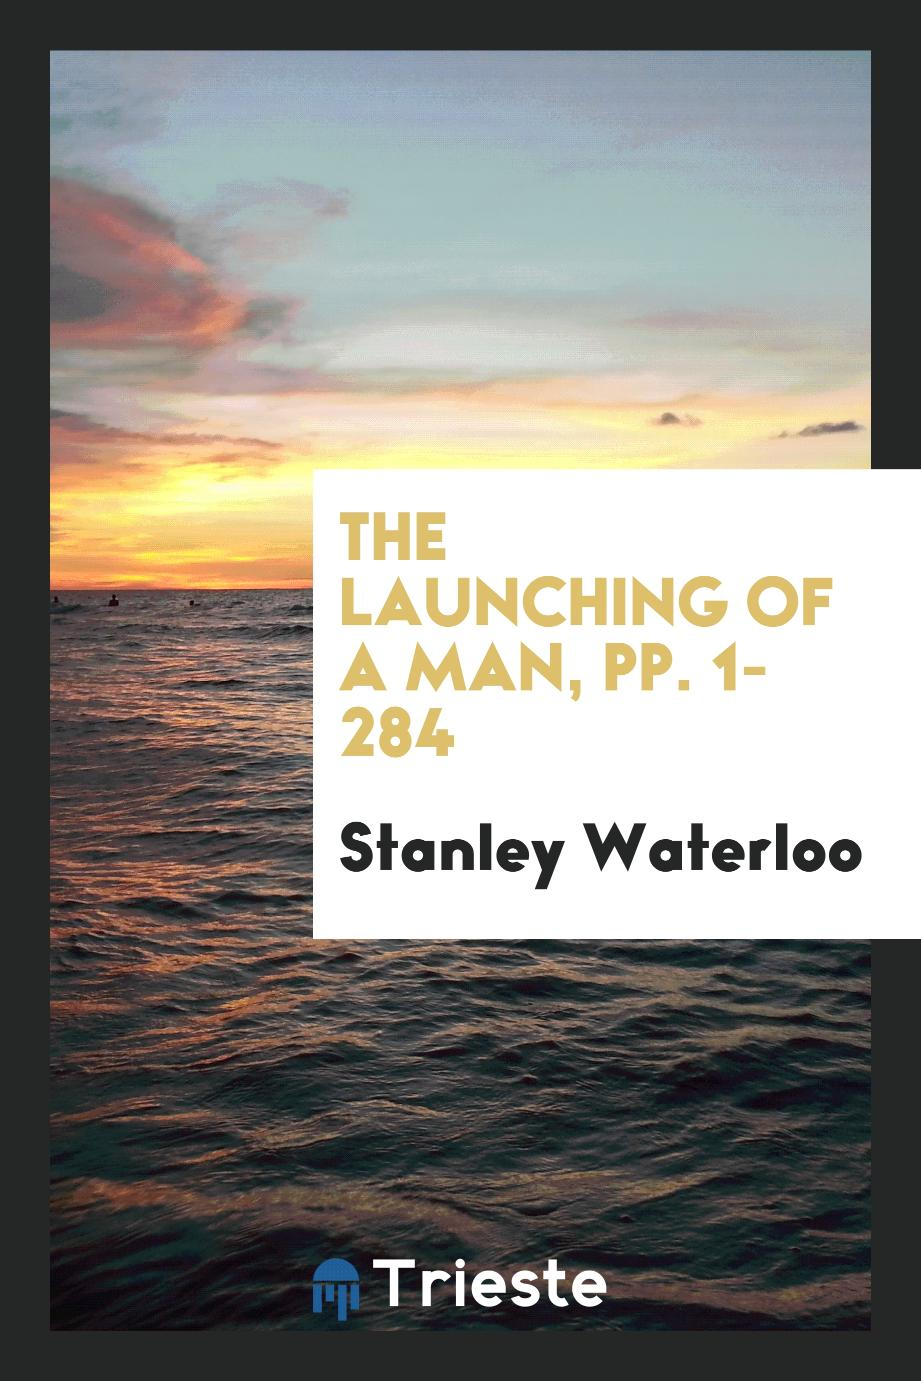 The Launching of a Man, pp. 1-284